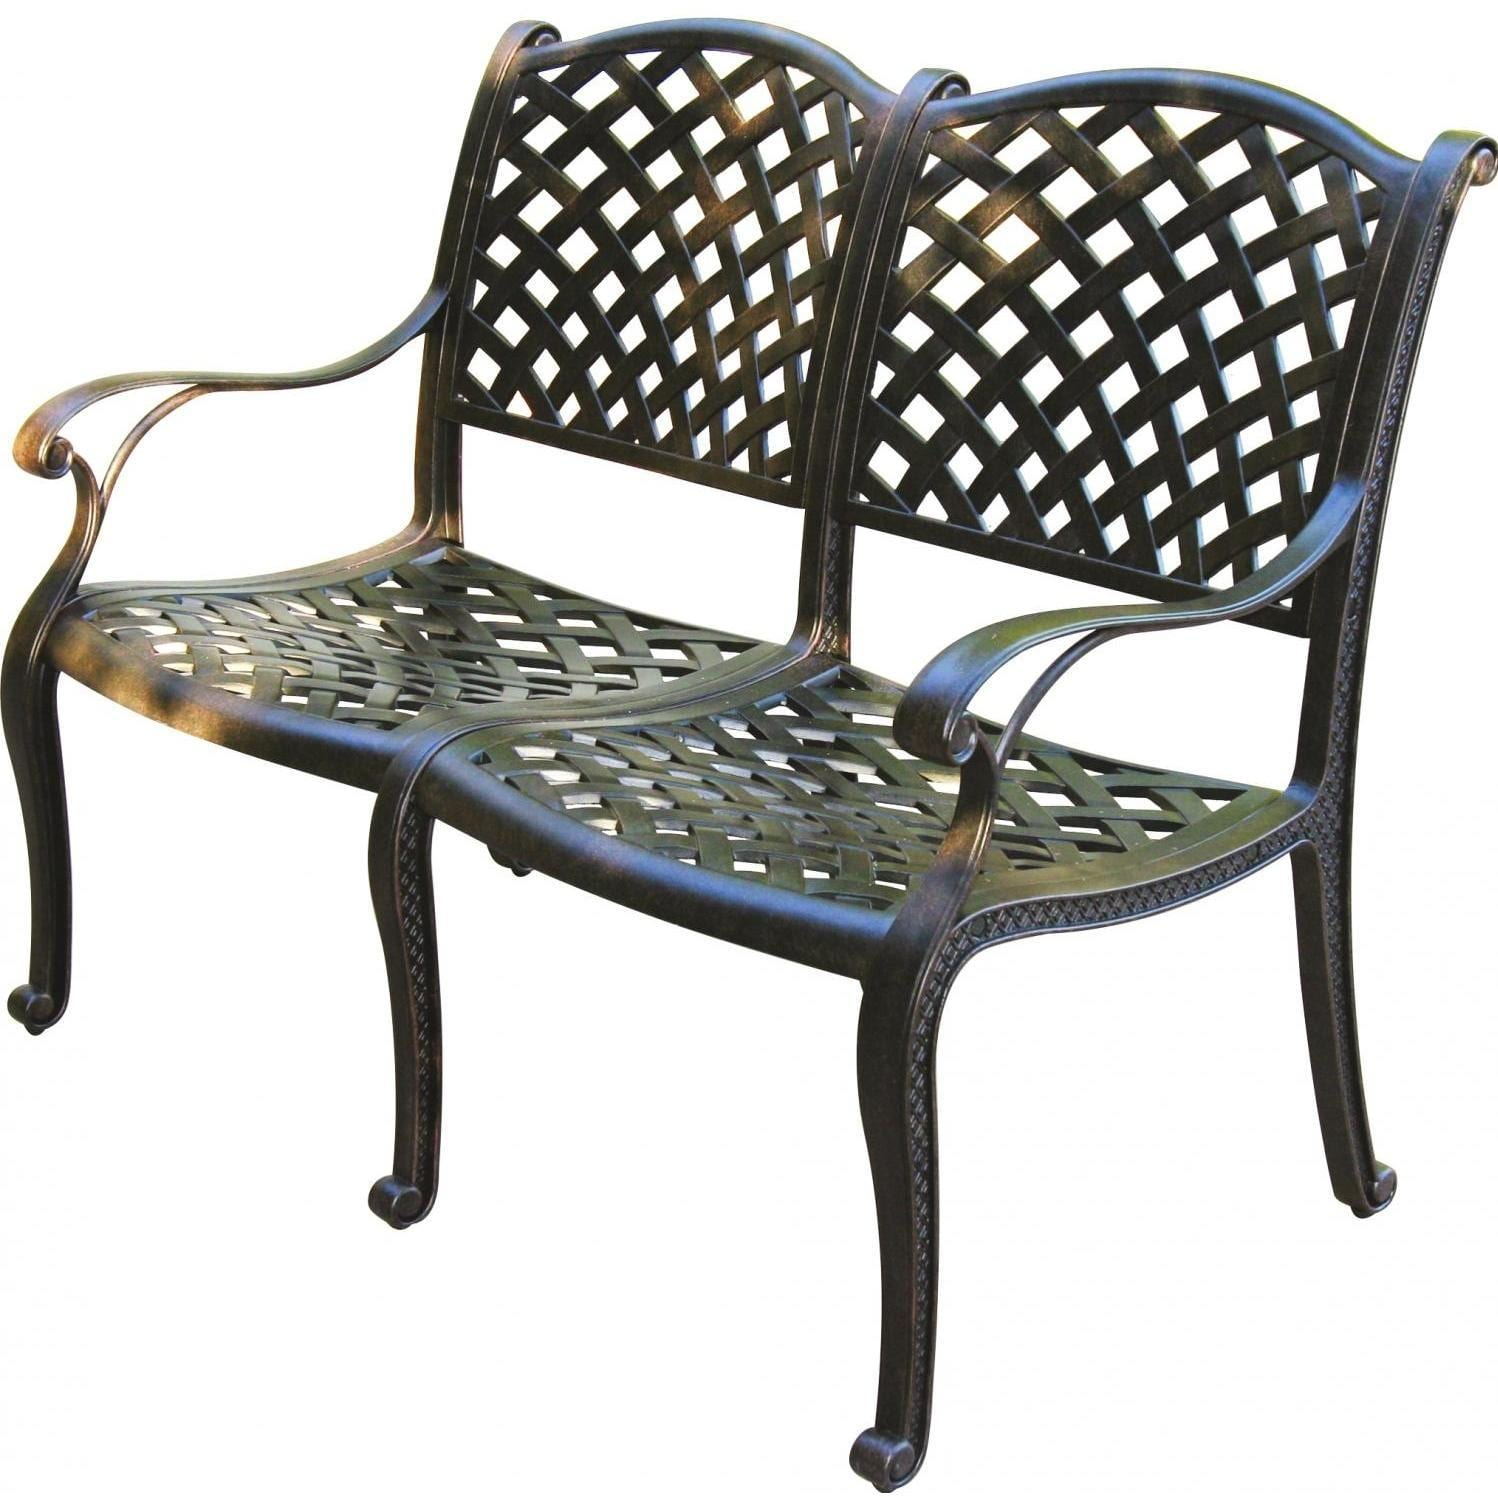 Darlee Nassau Cast Aluminum Patio Bench